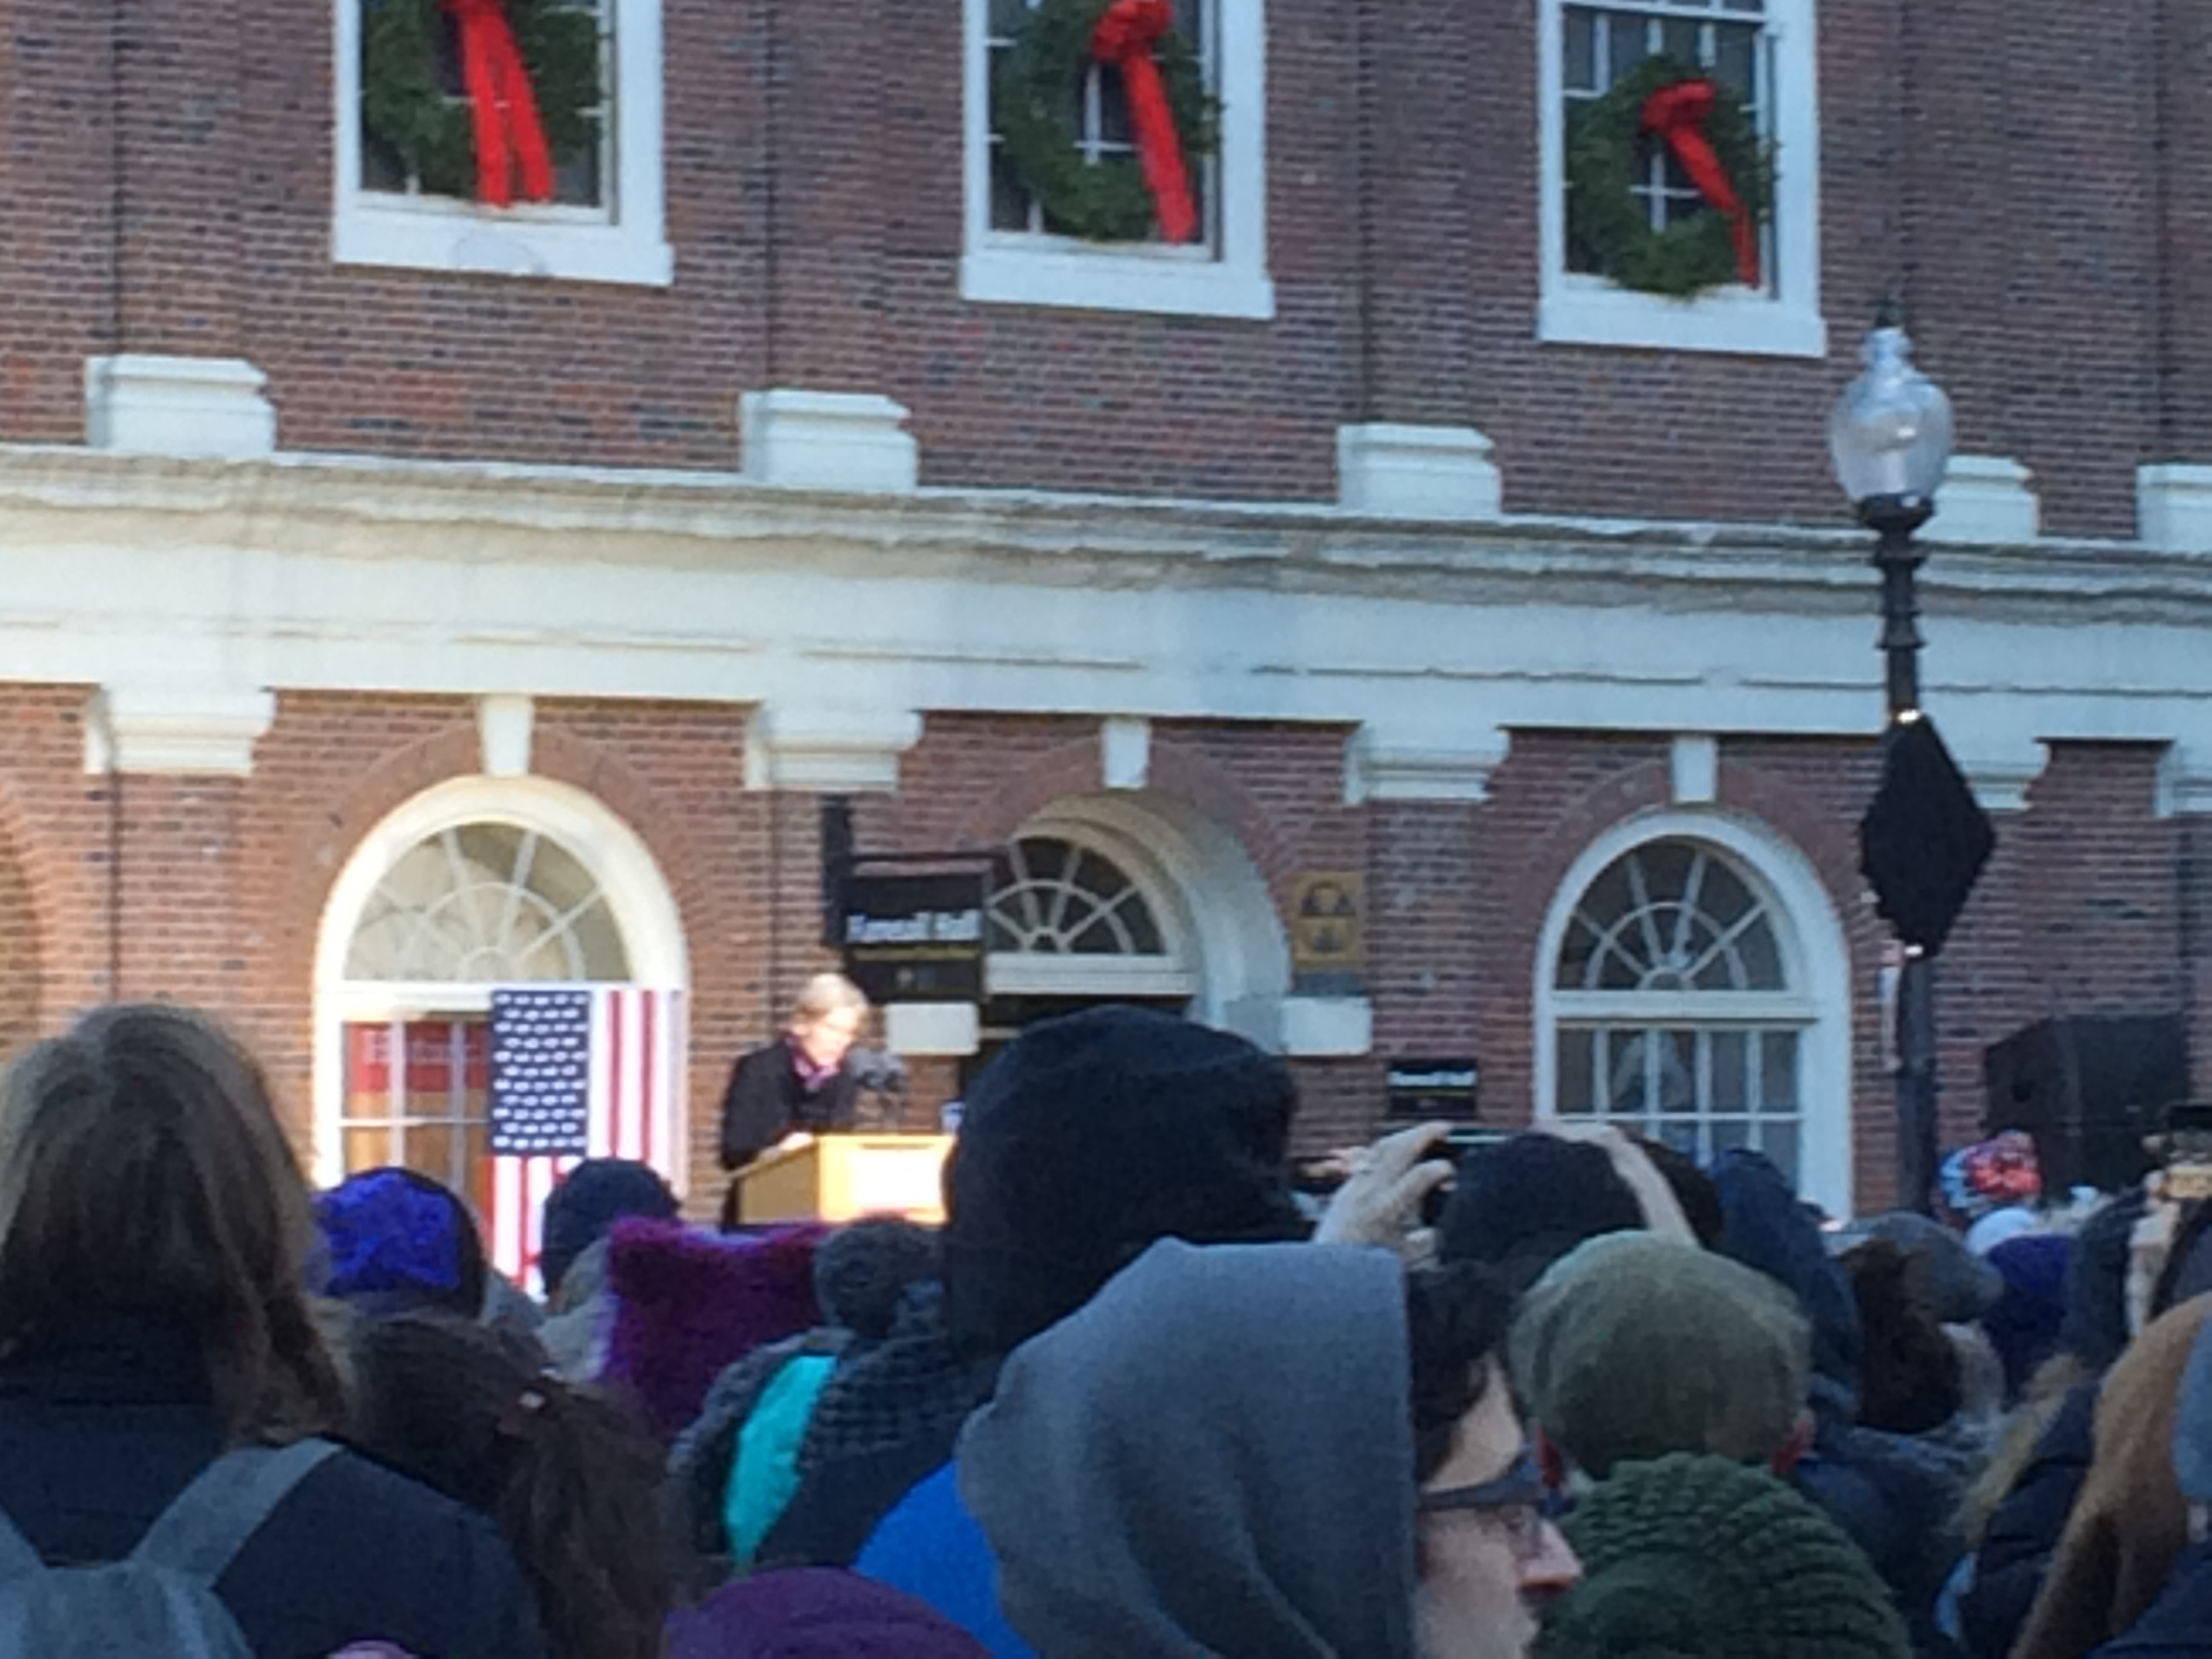 Senator Warren speaking at January 15, 2017 healthcare rally in Boston. Click to view larger version